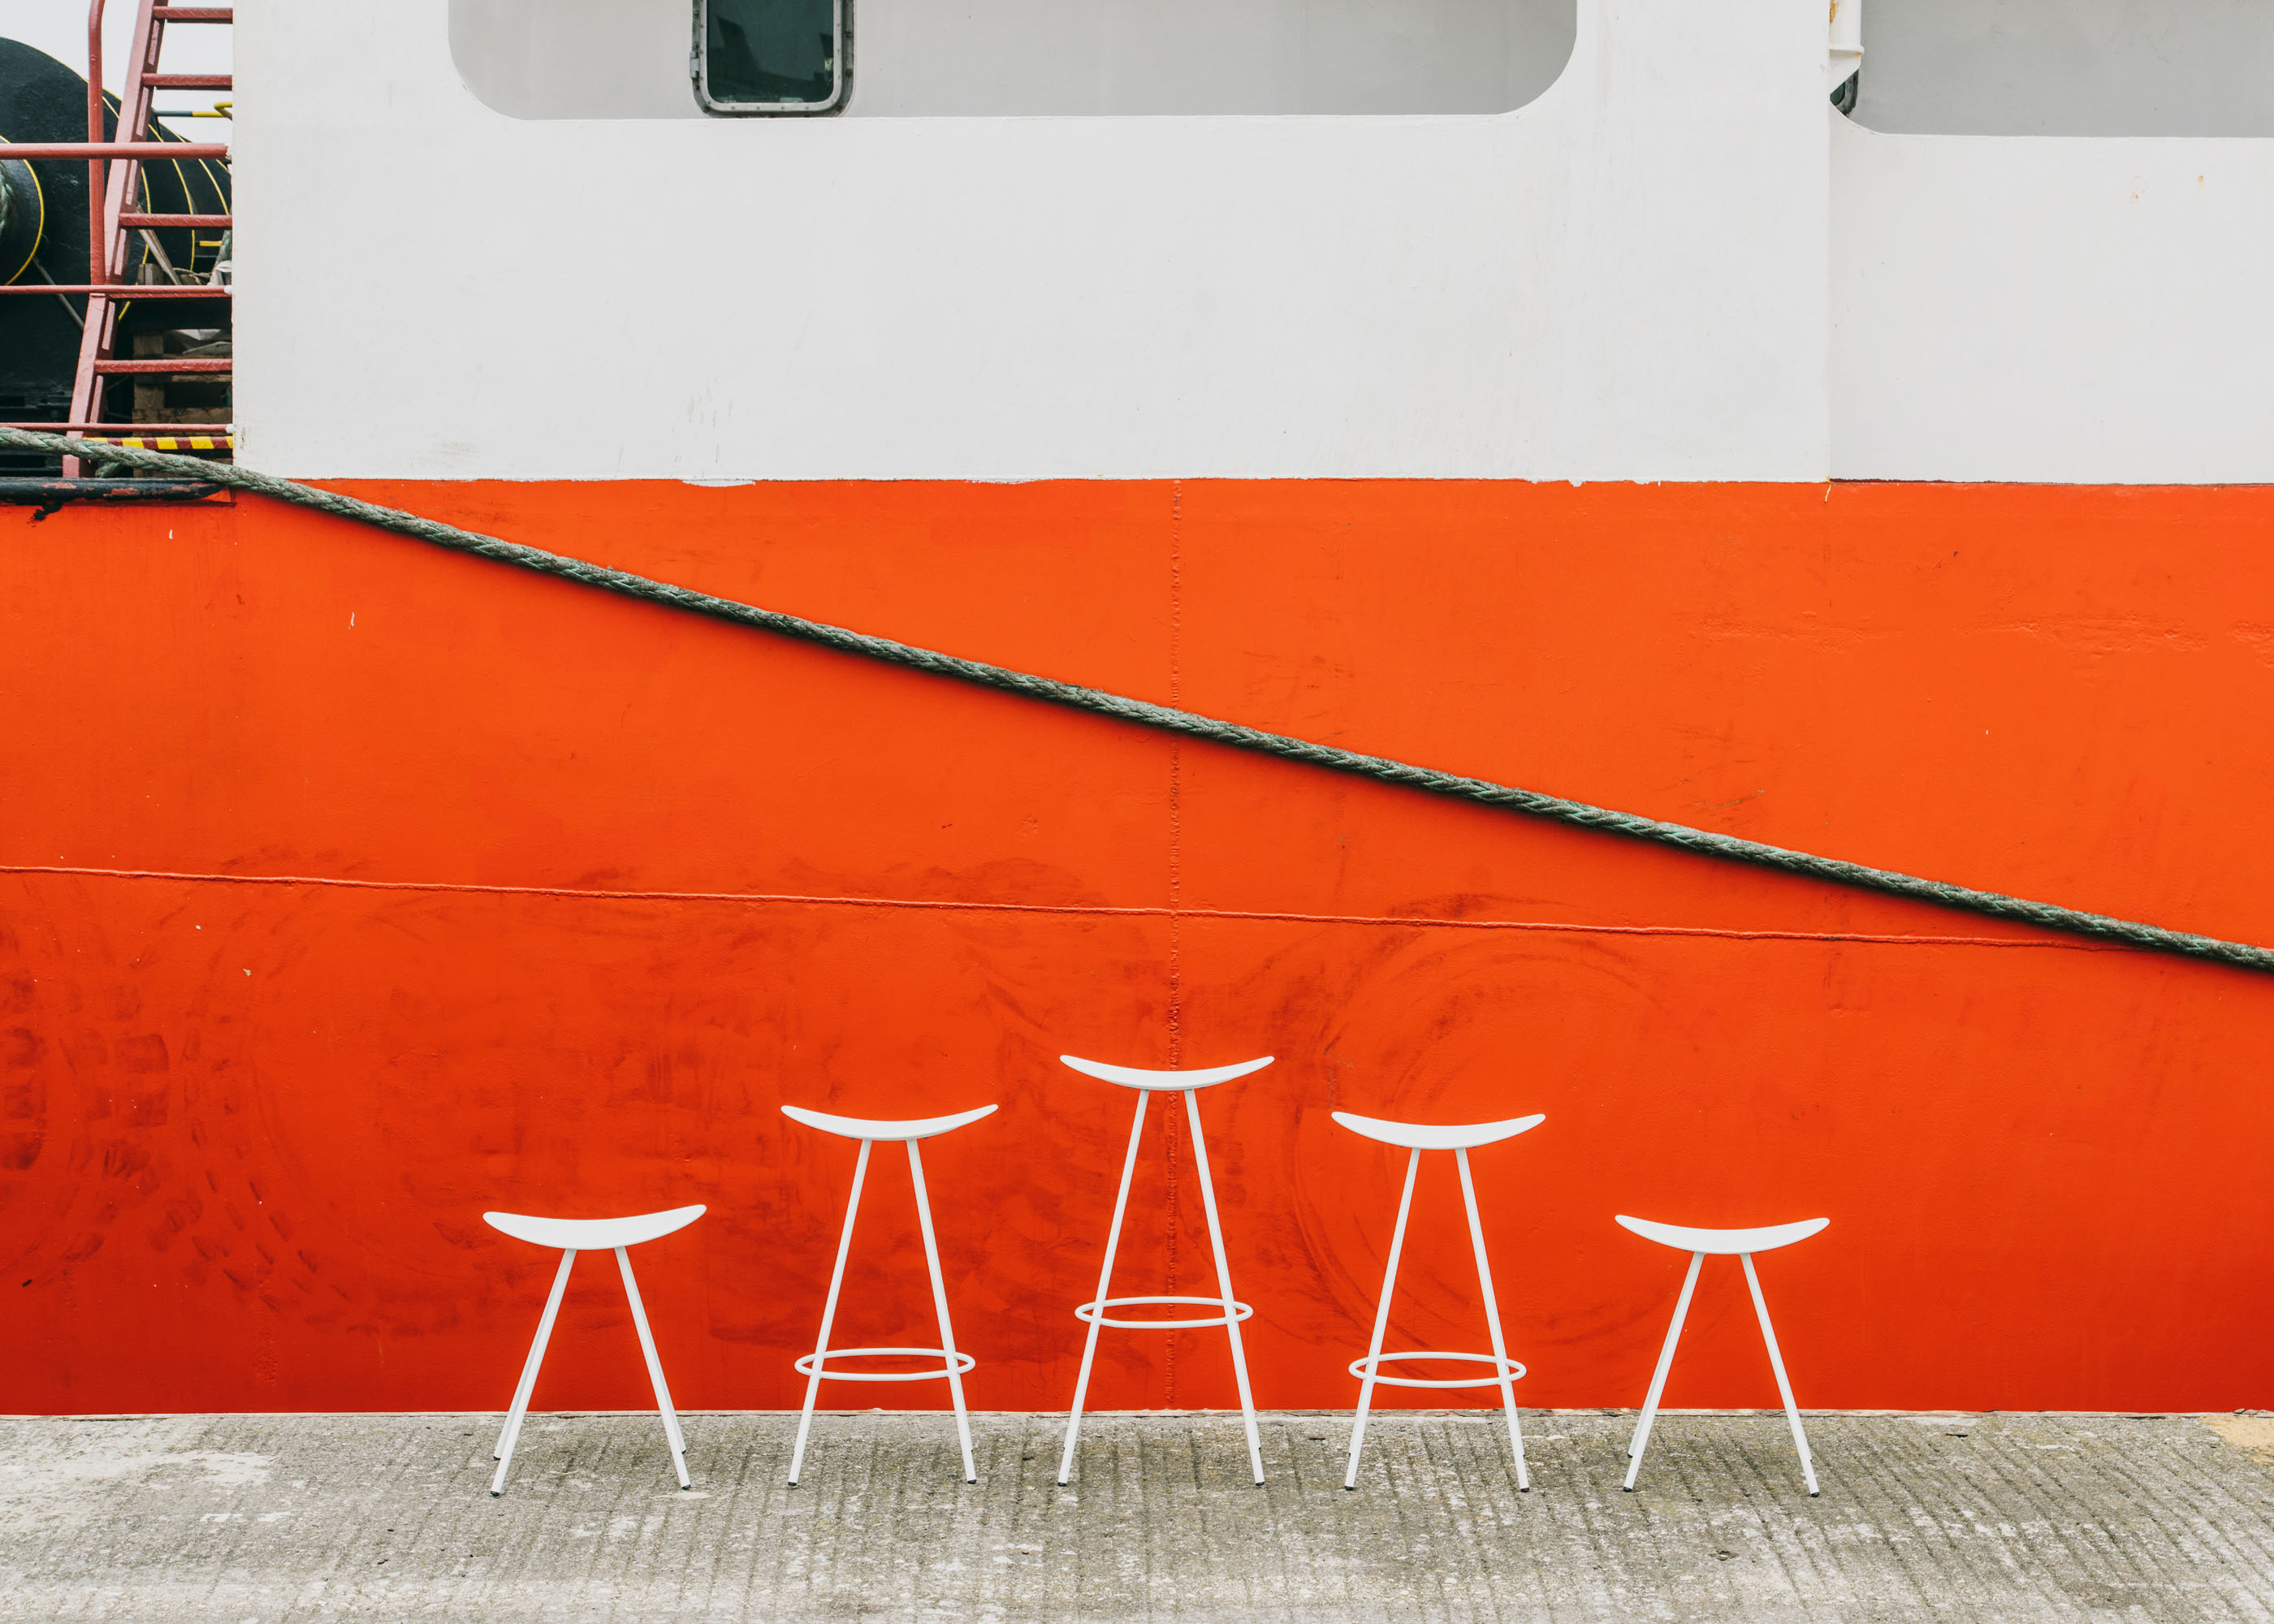 #furniture #enea #design #clase #basque #boat #red